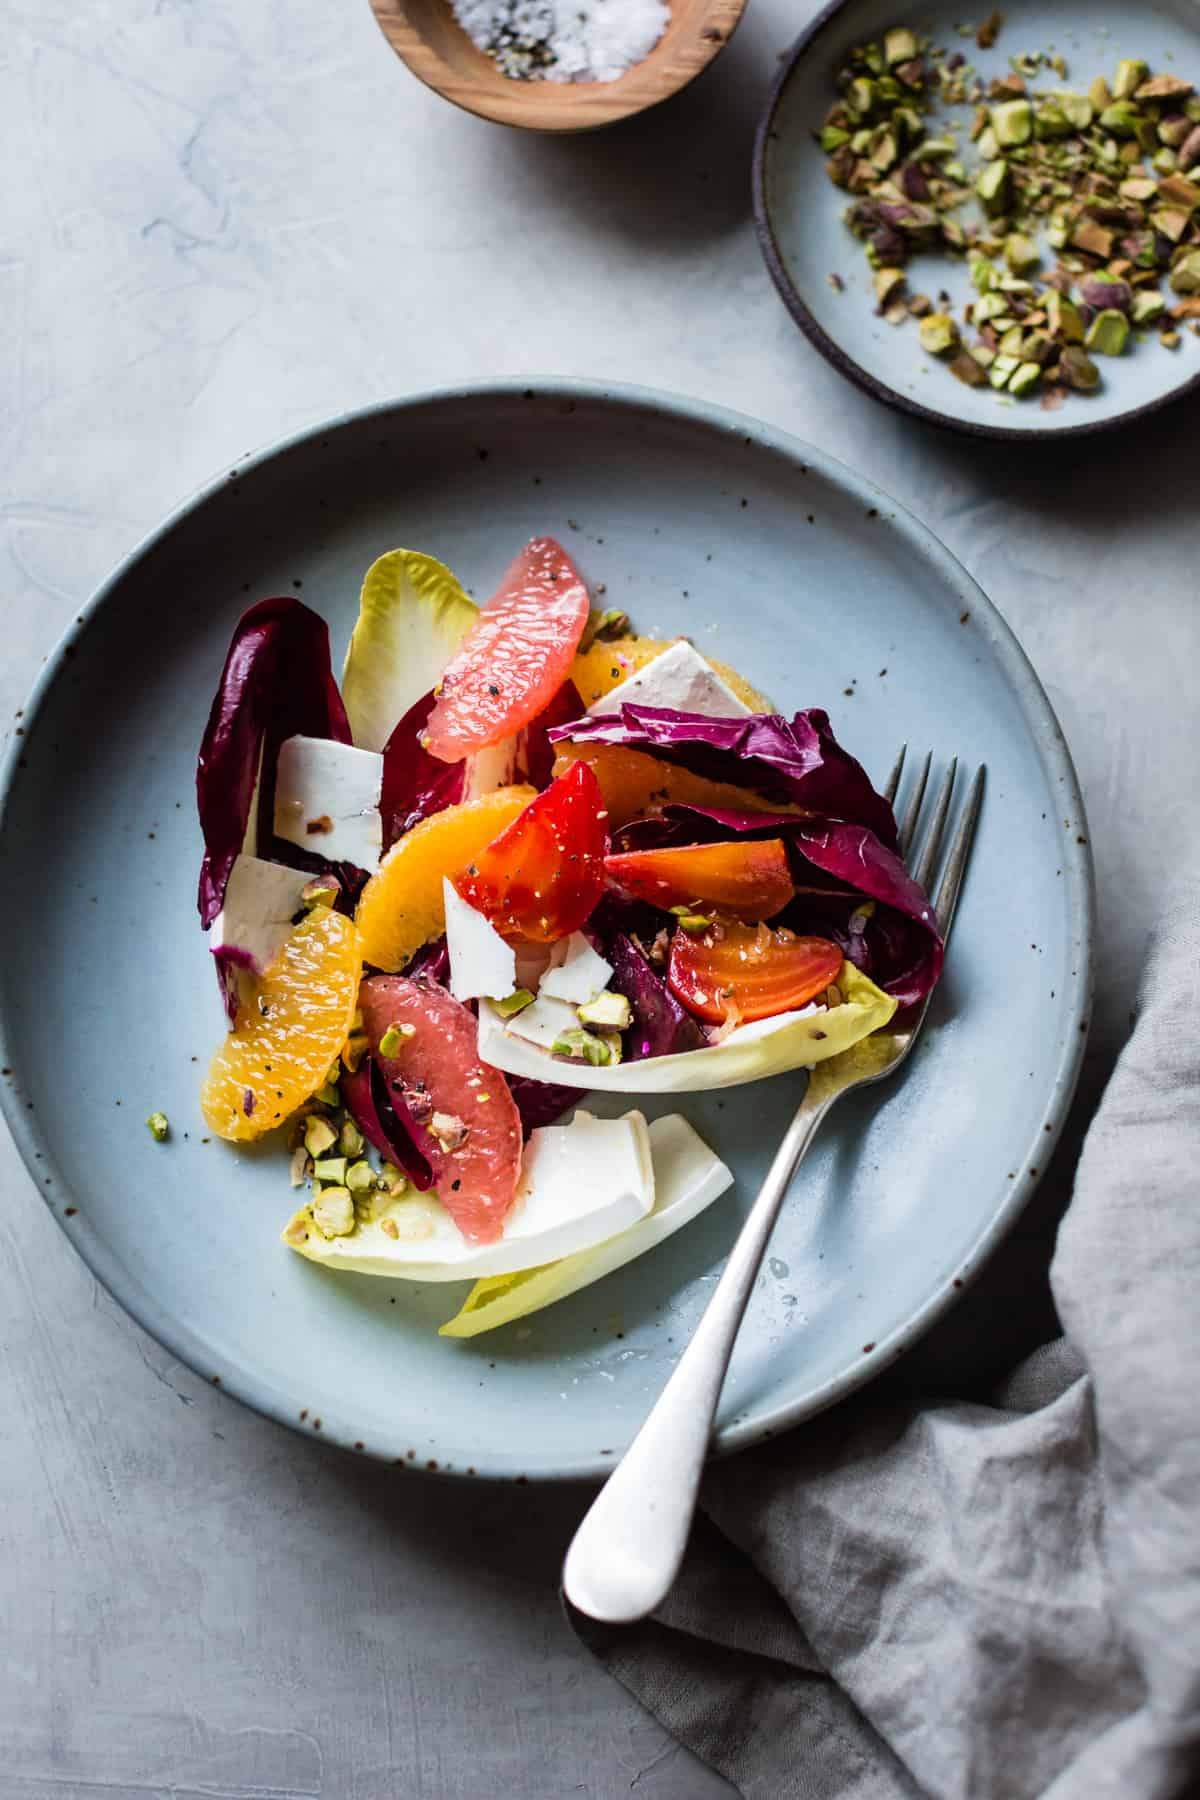 plate of Beet, Citrus, & Chicory Salad with Ricotta Salata and Pistachios